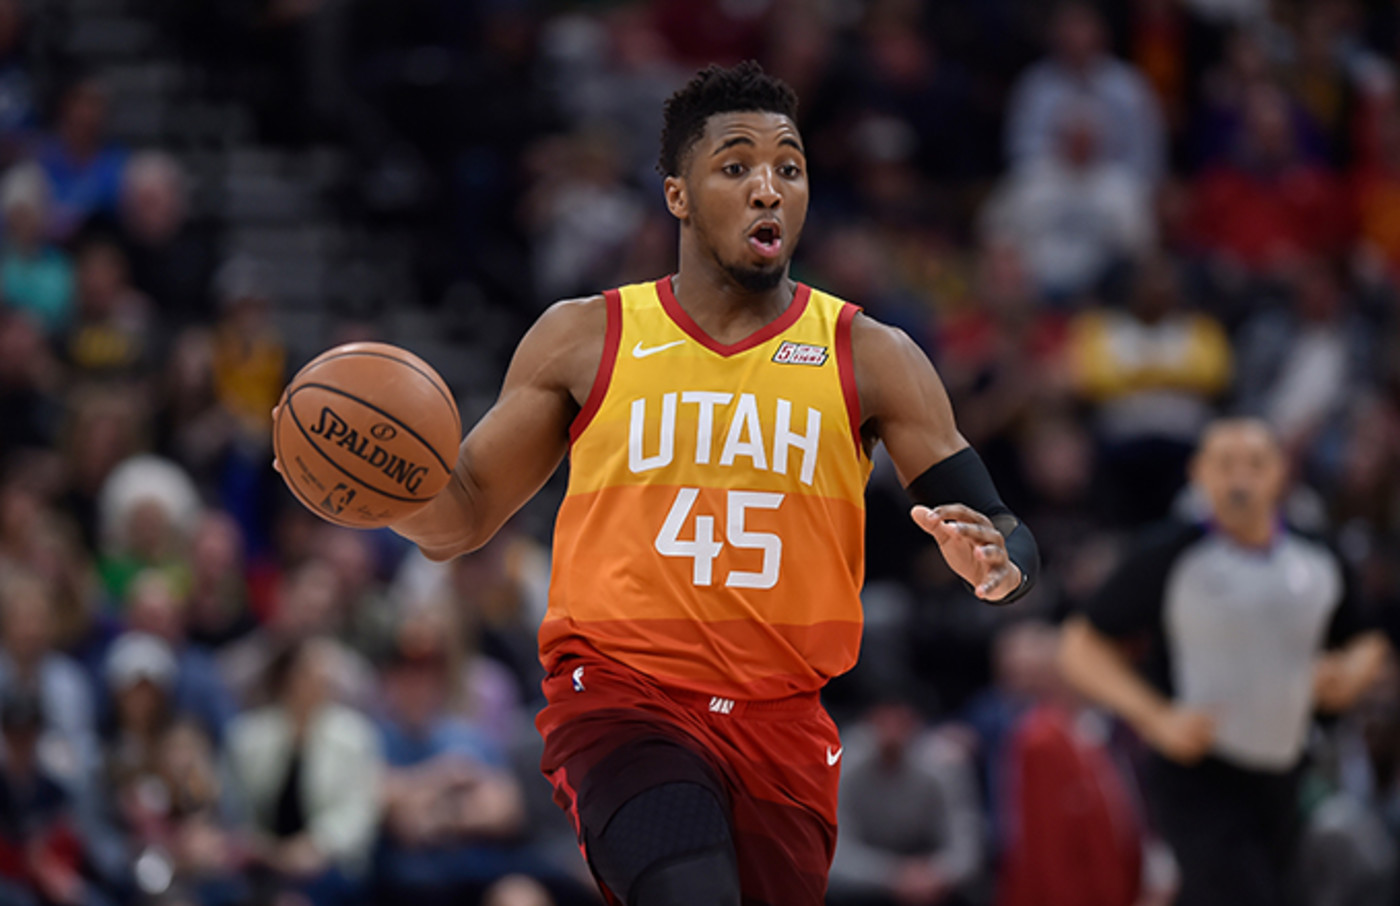 This is a photo of Donavan Mitchell.